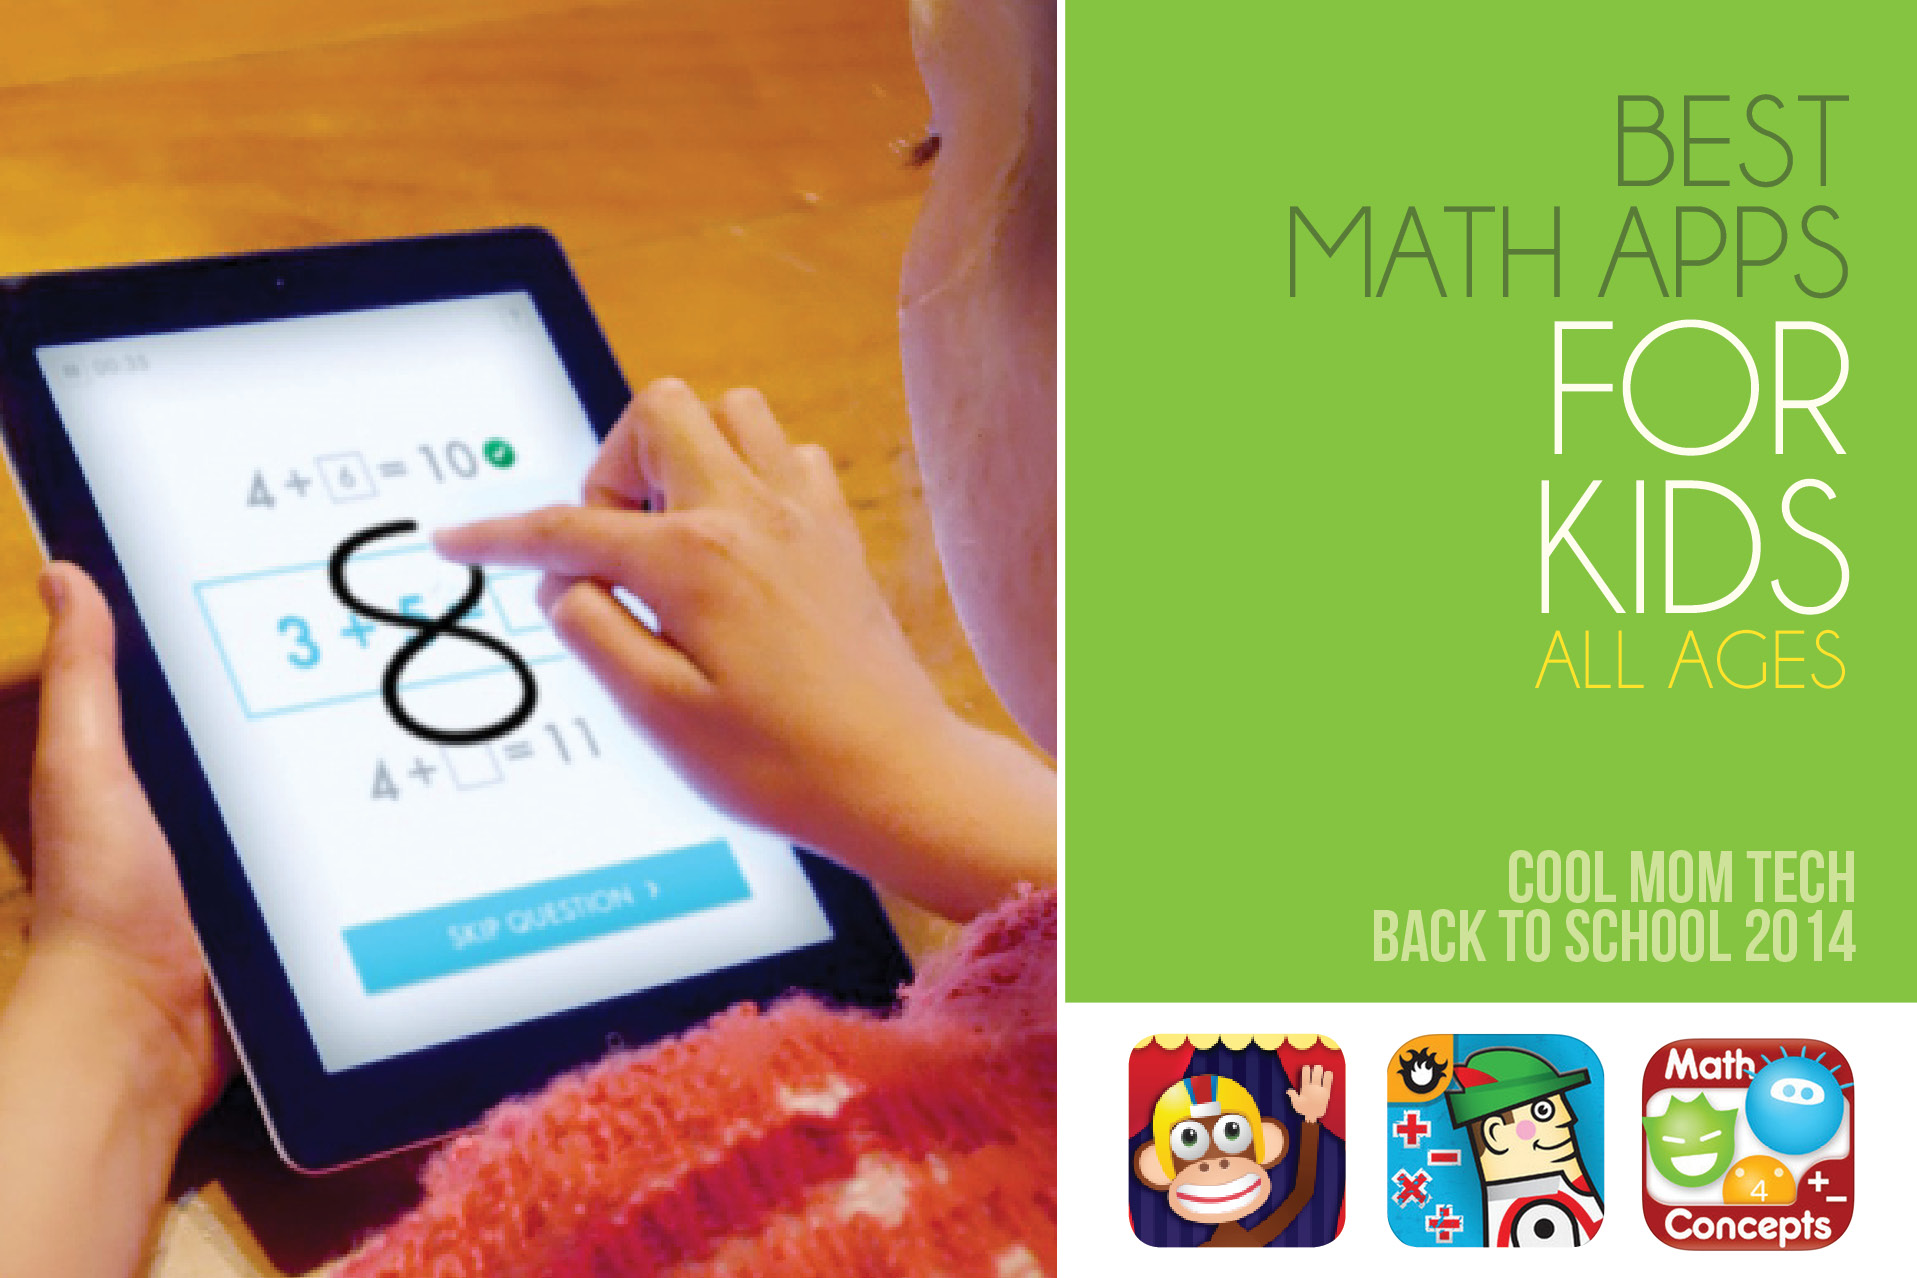 16 Best Math Apps For Kids Of All Ages